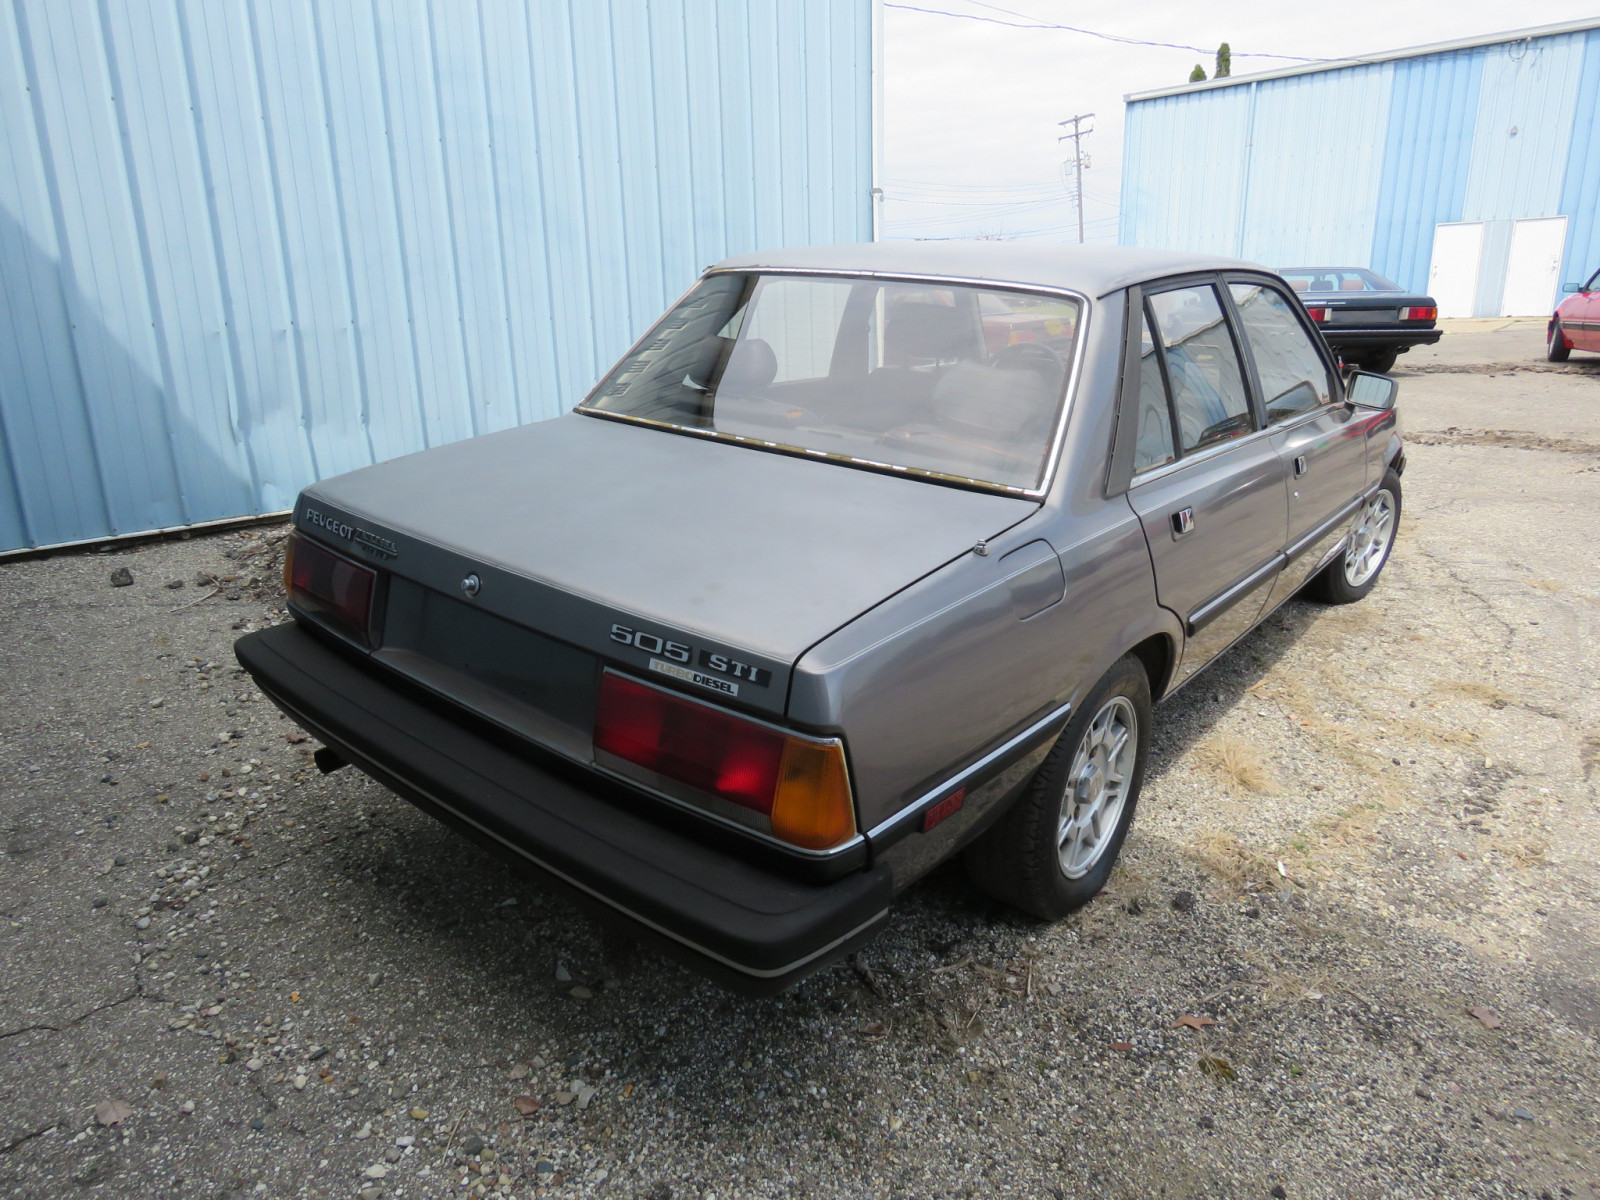 1984 Peugeot 505 STI Turbo D Sedan - Image 4